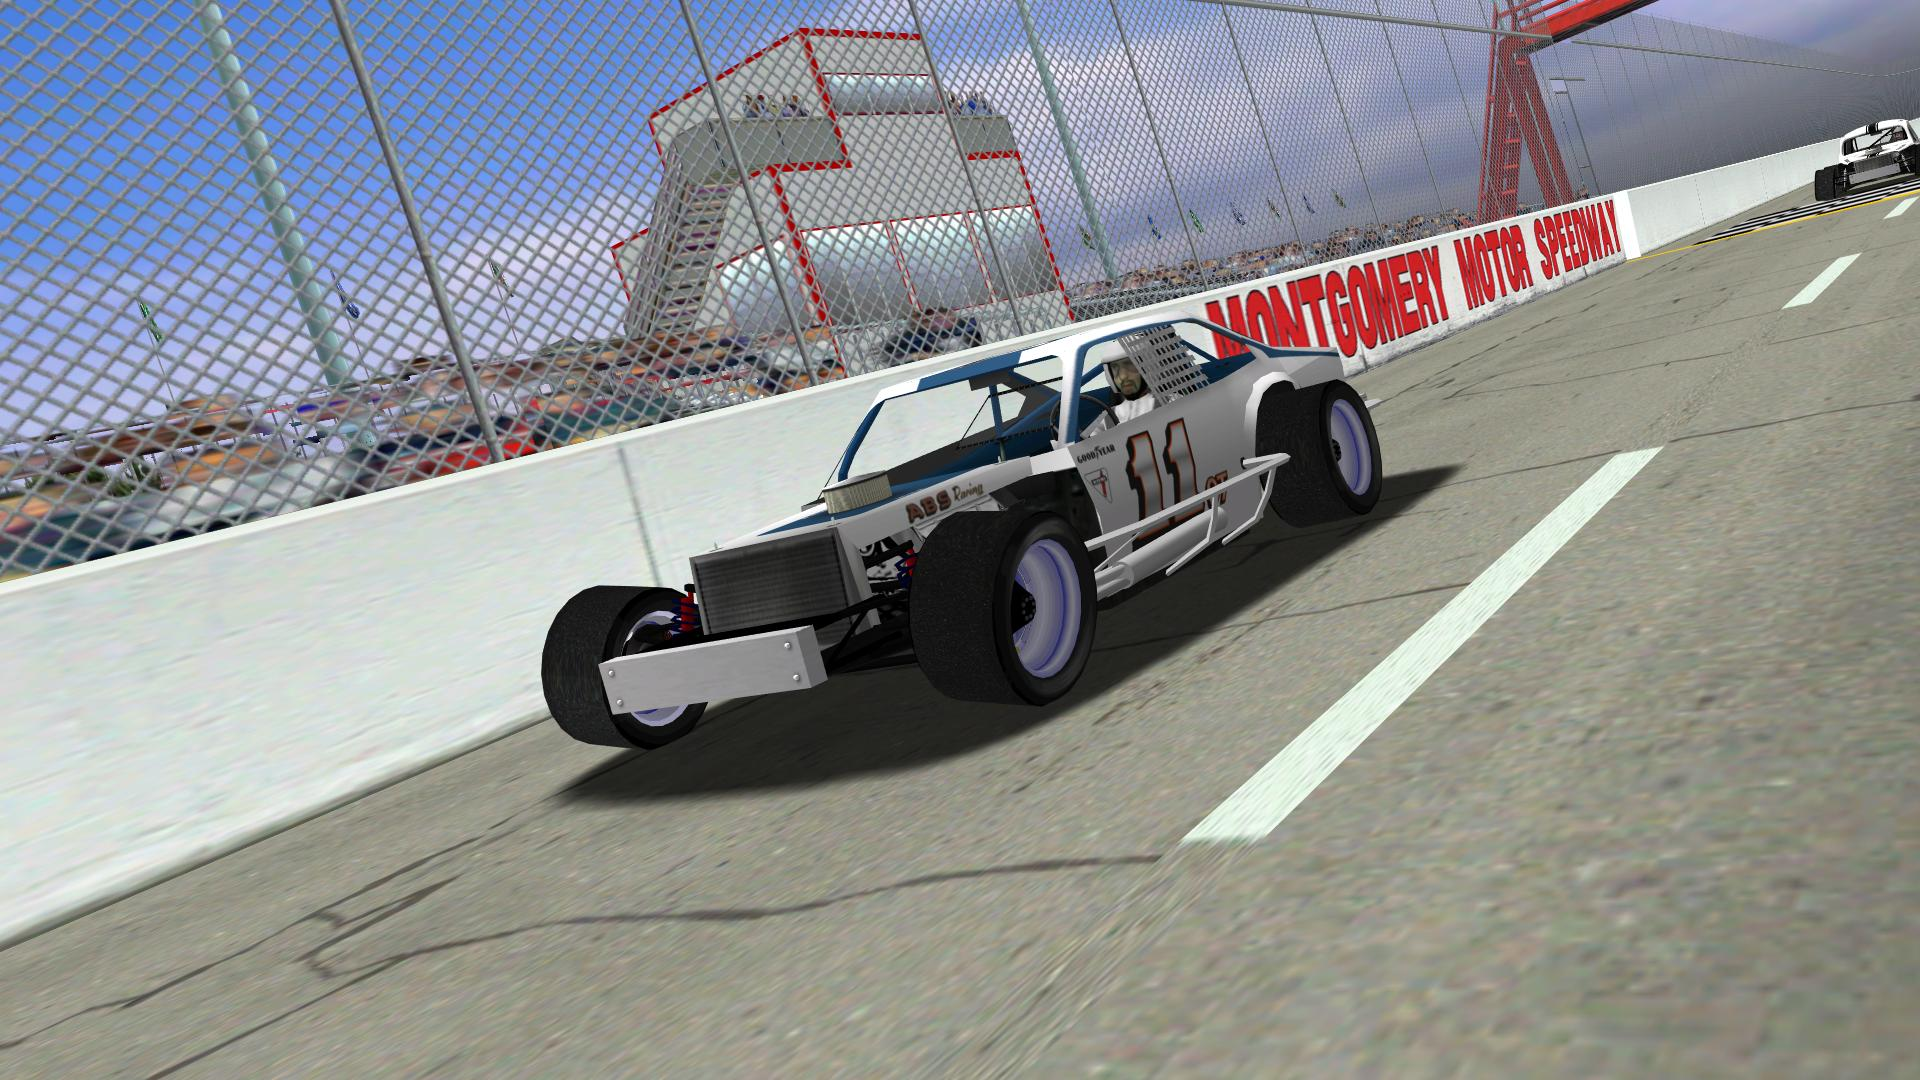 Speedyman11 racing down the frontstretch at Montgomery. (NHMA)